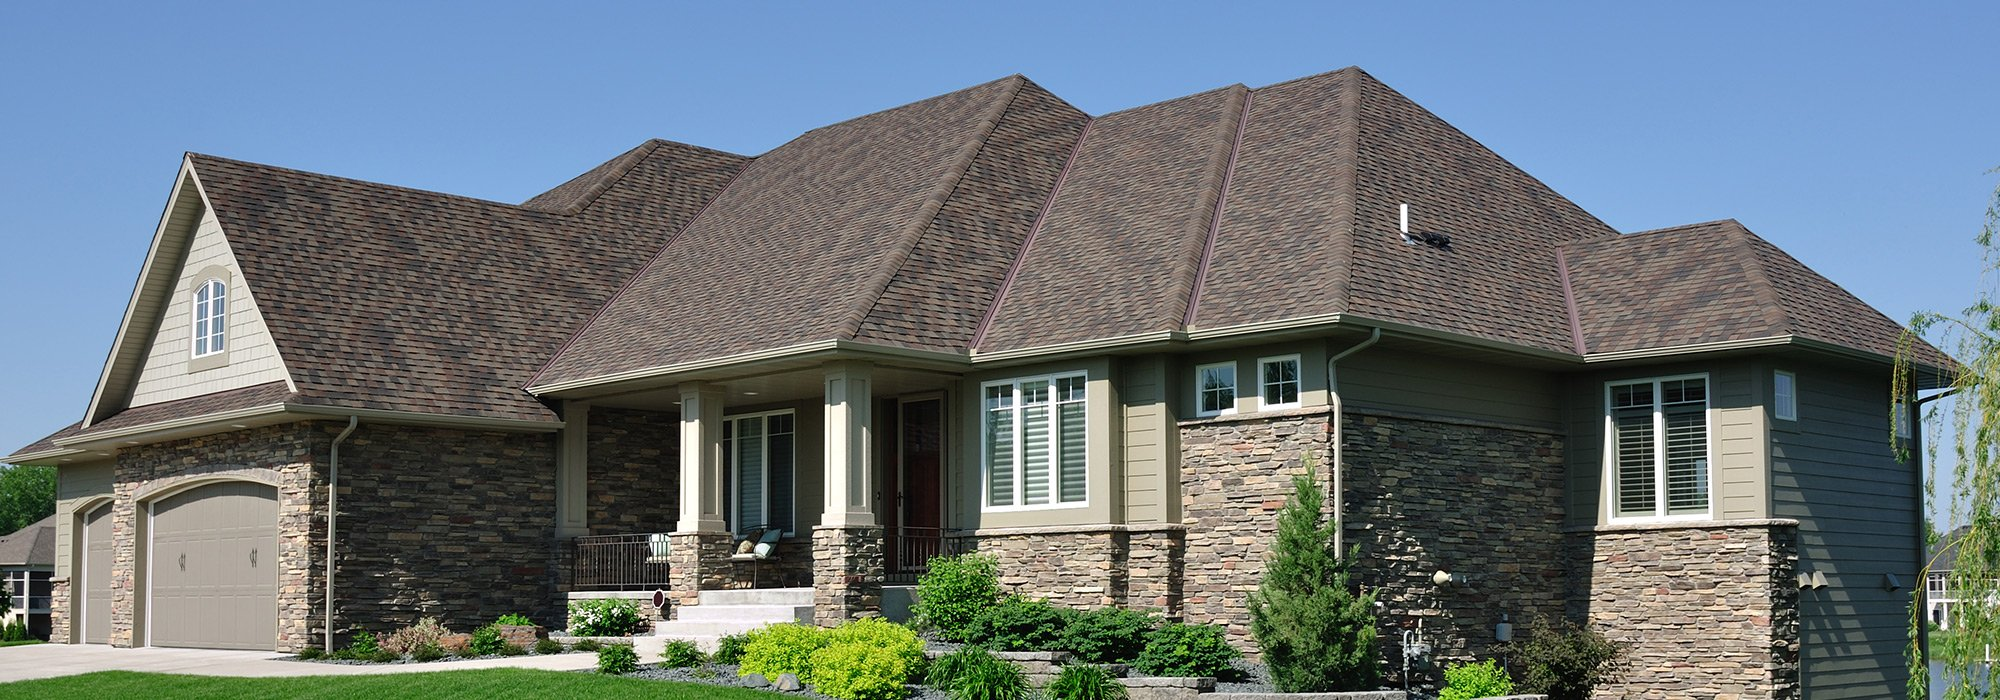 roof cleaning long island new york